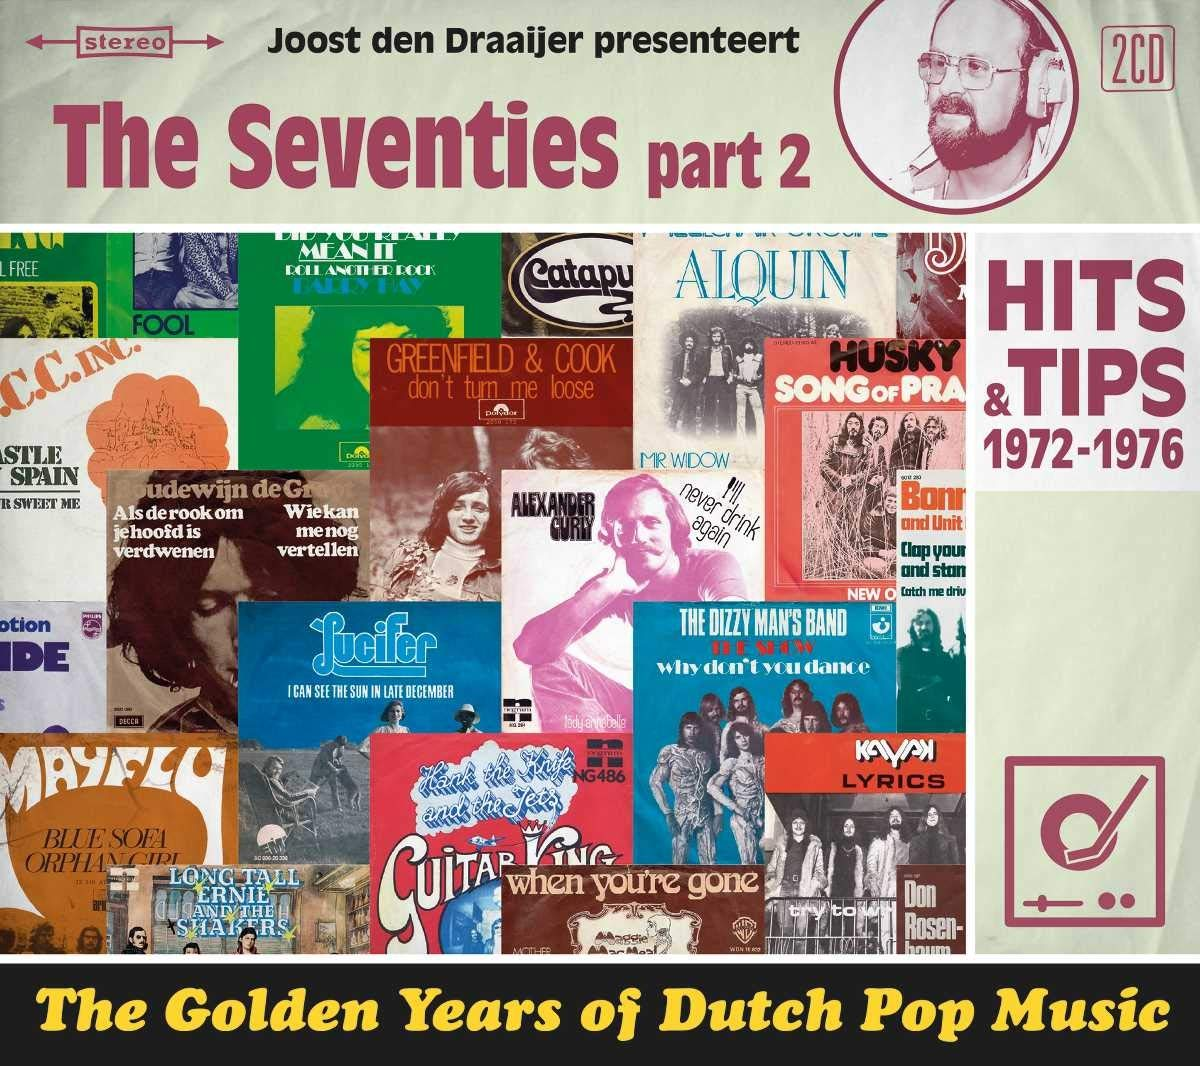 VA - The Golden Years Of Dutch Pop Music  The Seventies Part 2 (2016) [FLAC] Download